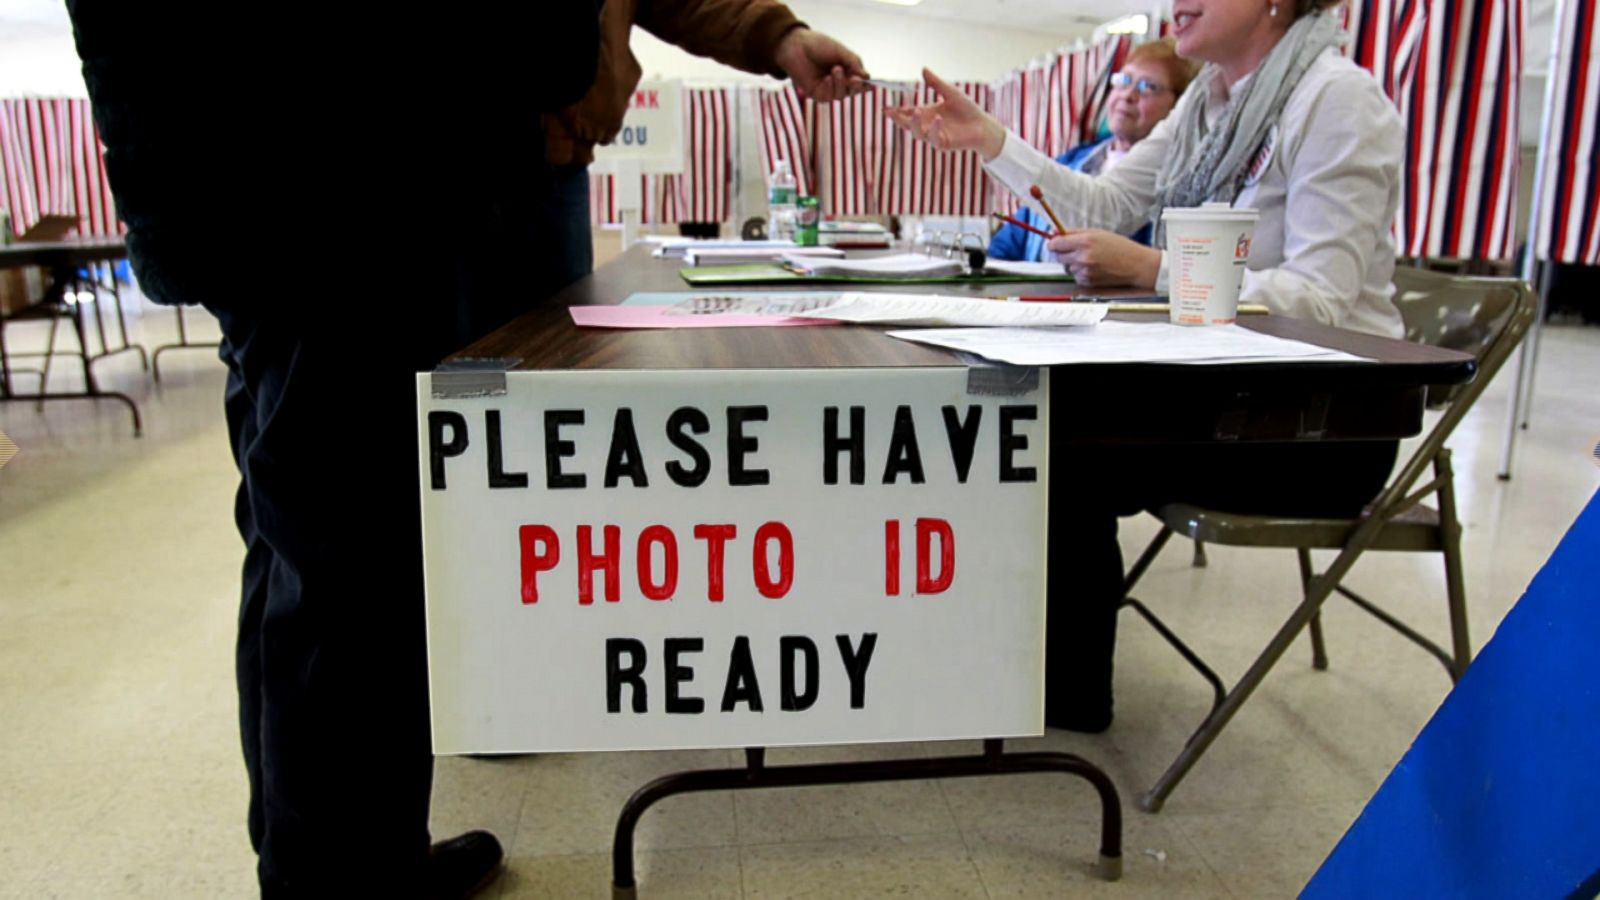 Federal Government To Drop Opposition To Texas Voter ID Law